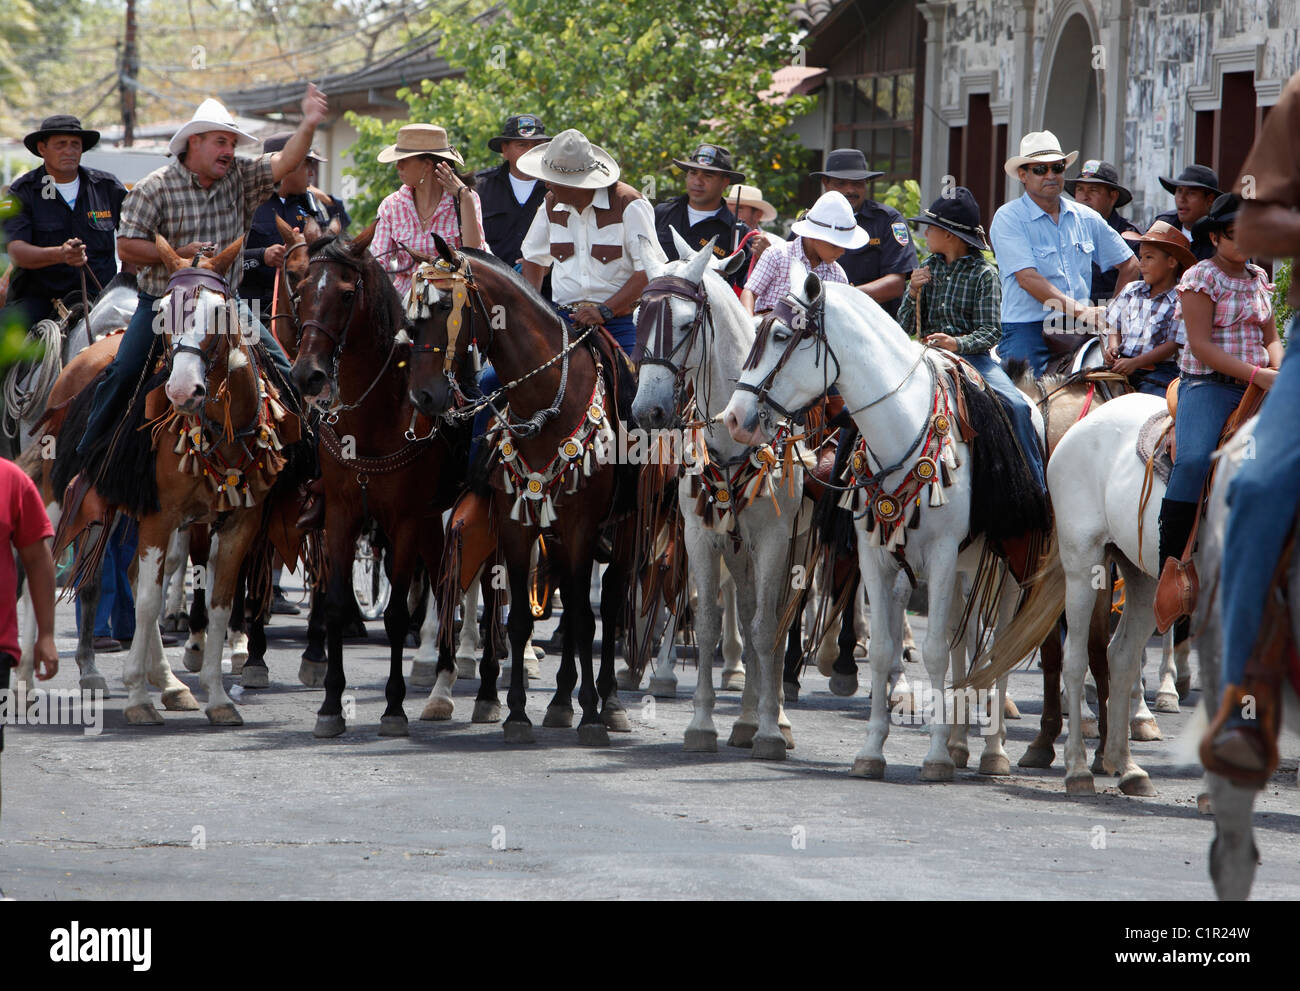 Men and women riding horses in the civic festival horse parade in Liberia, Costa Rica - Stock Image